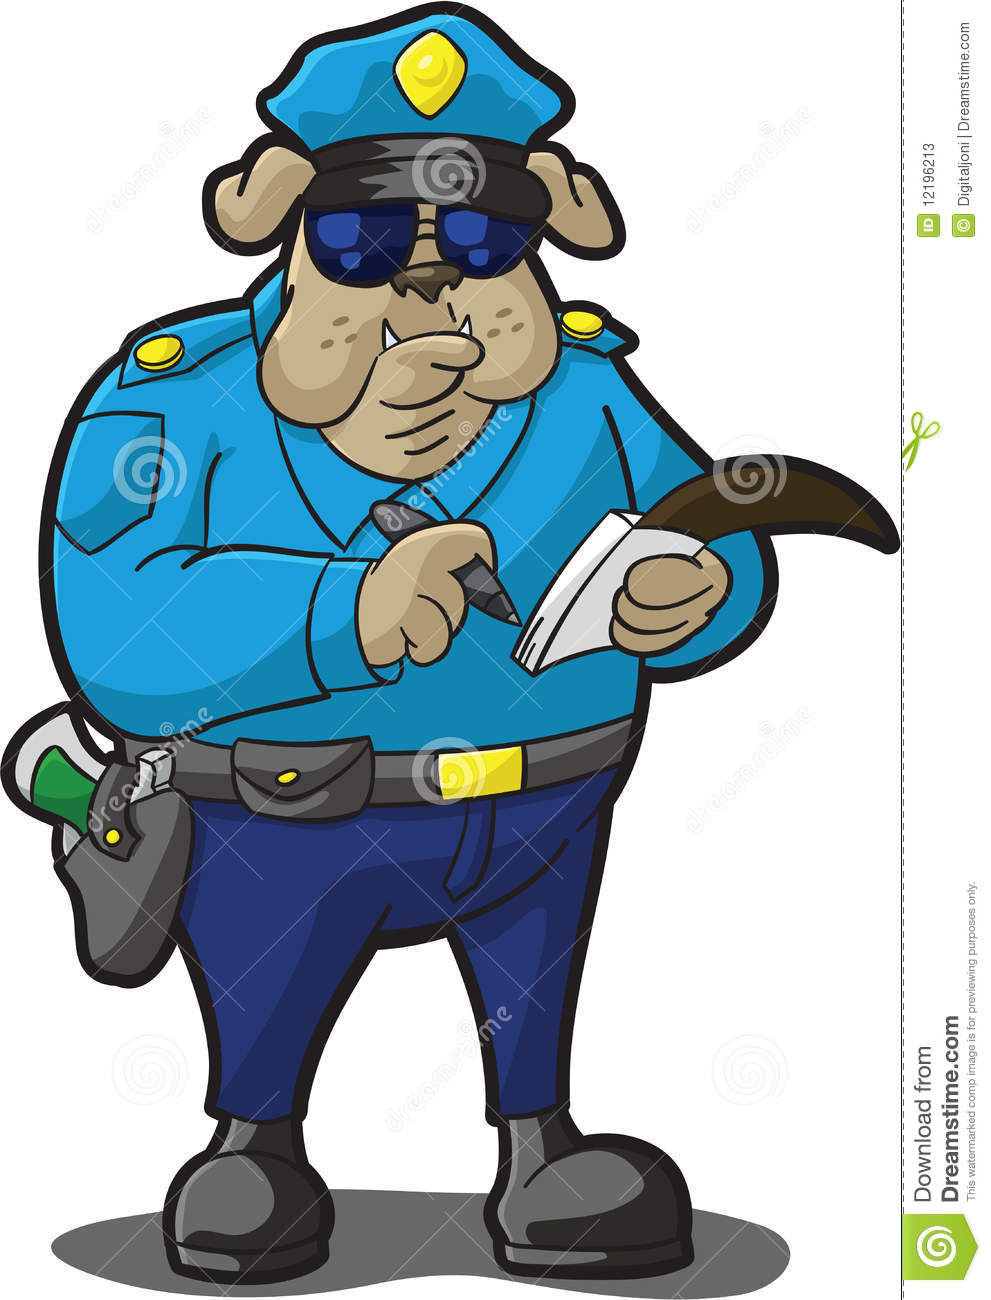 Cartoon Illustration Of A Bulldog In Police Uniform Writing Ticket